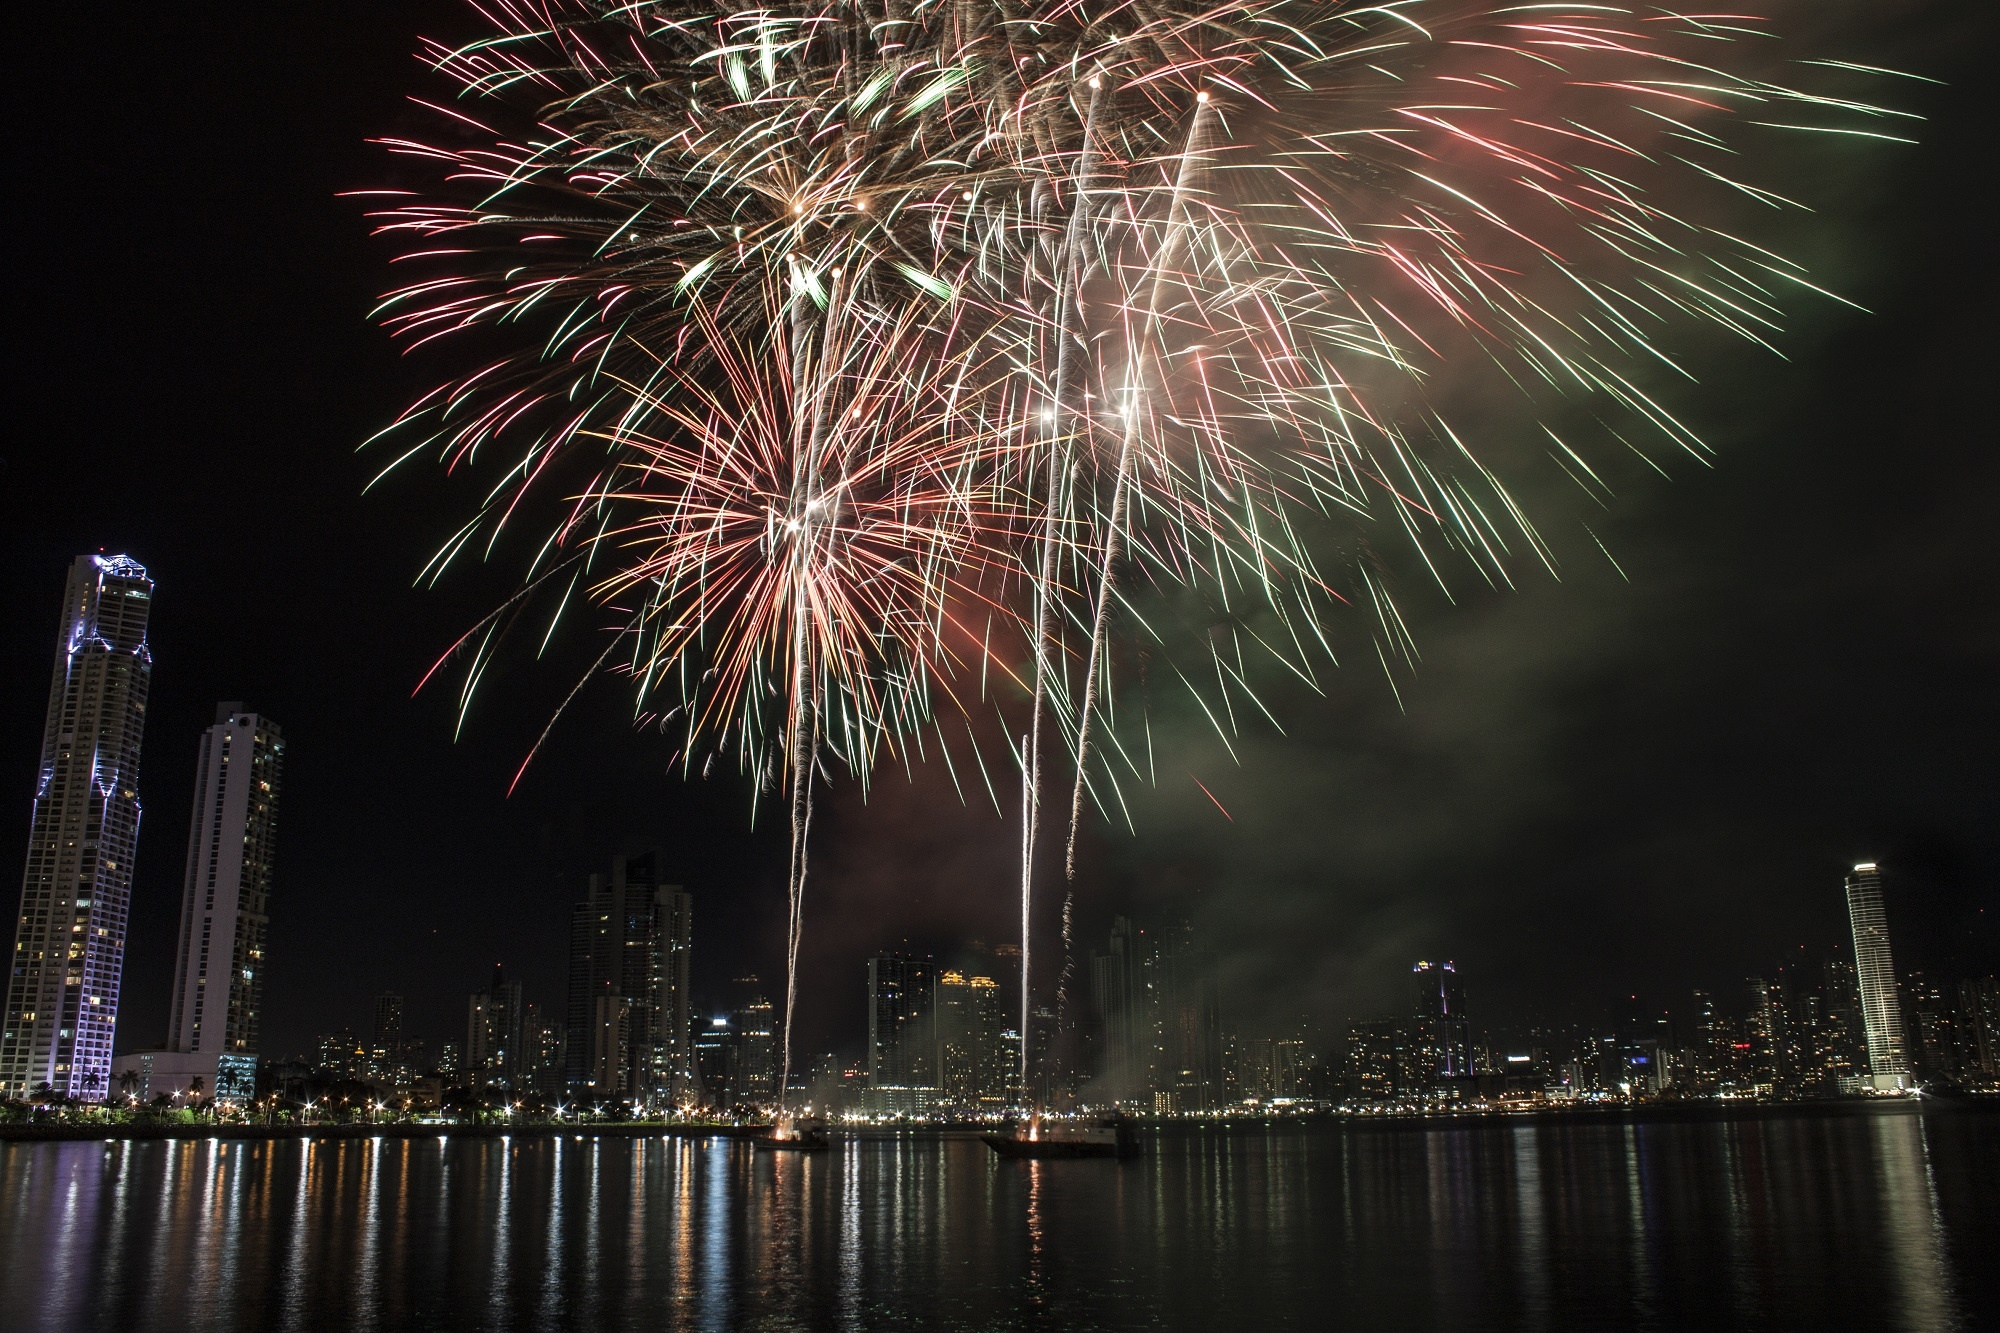 Fireworks exploding over a modern city's harbor at night